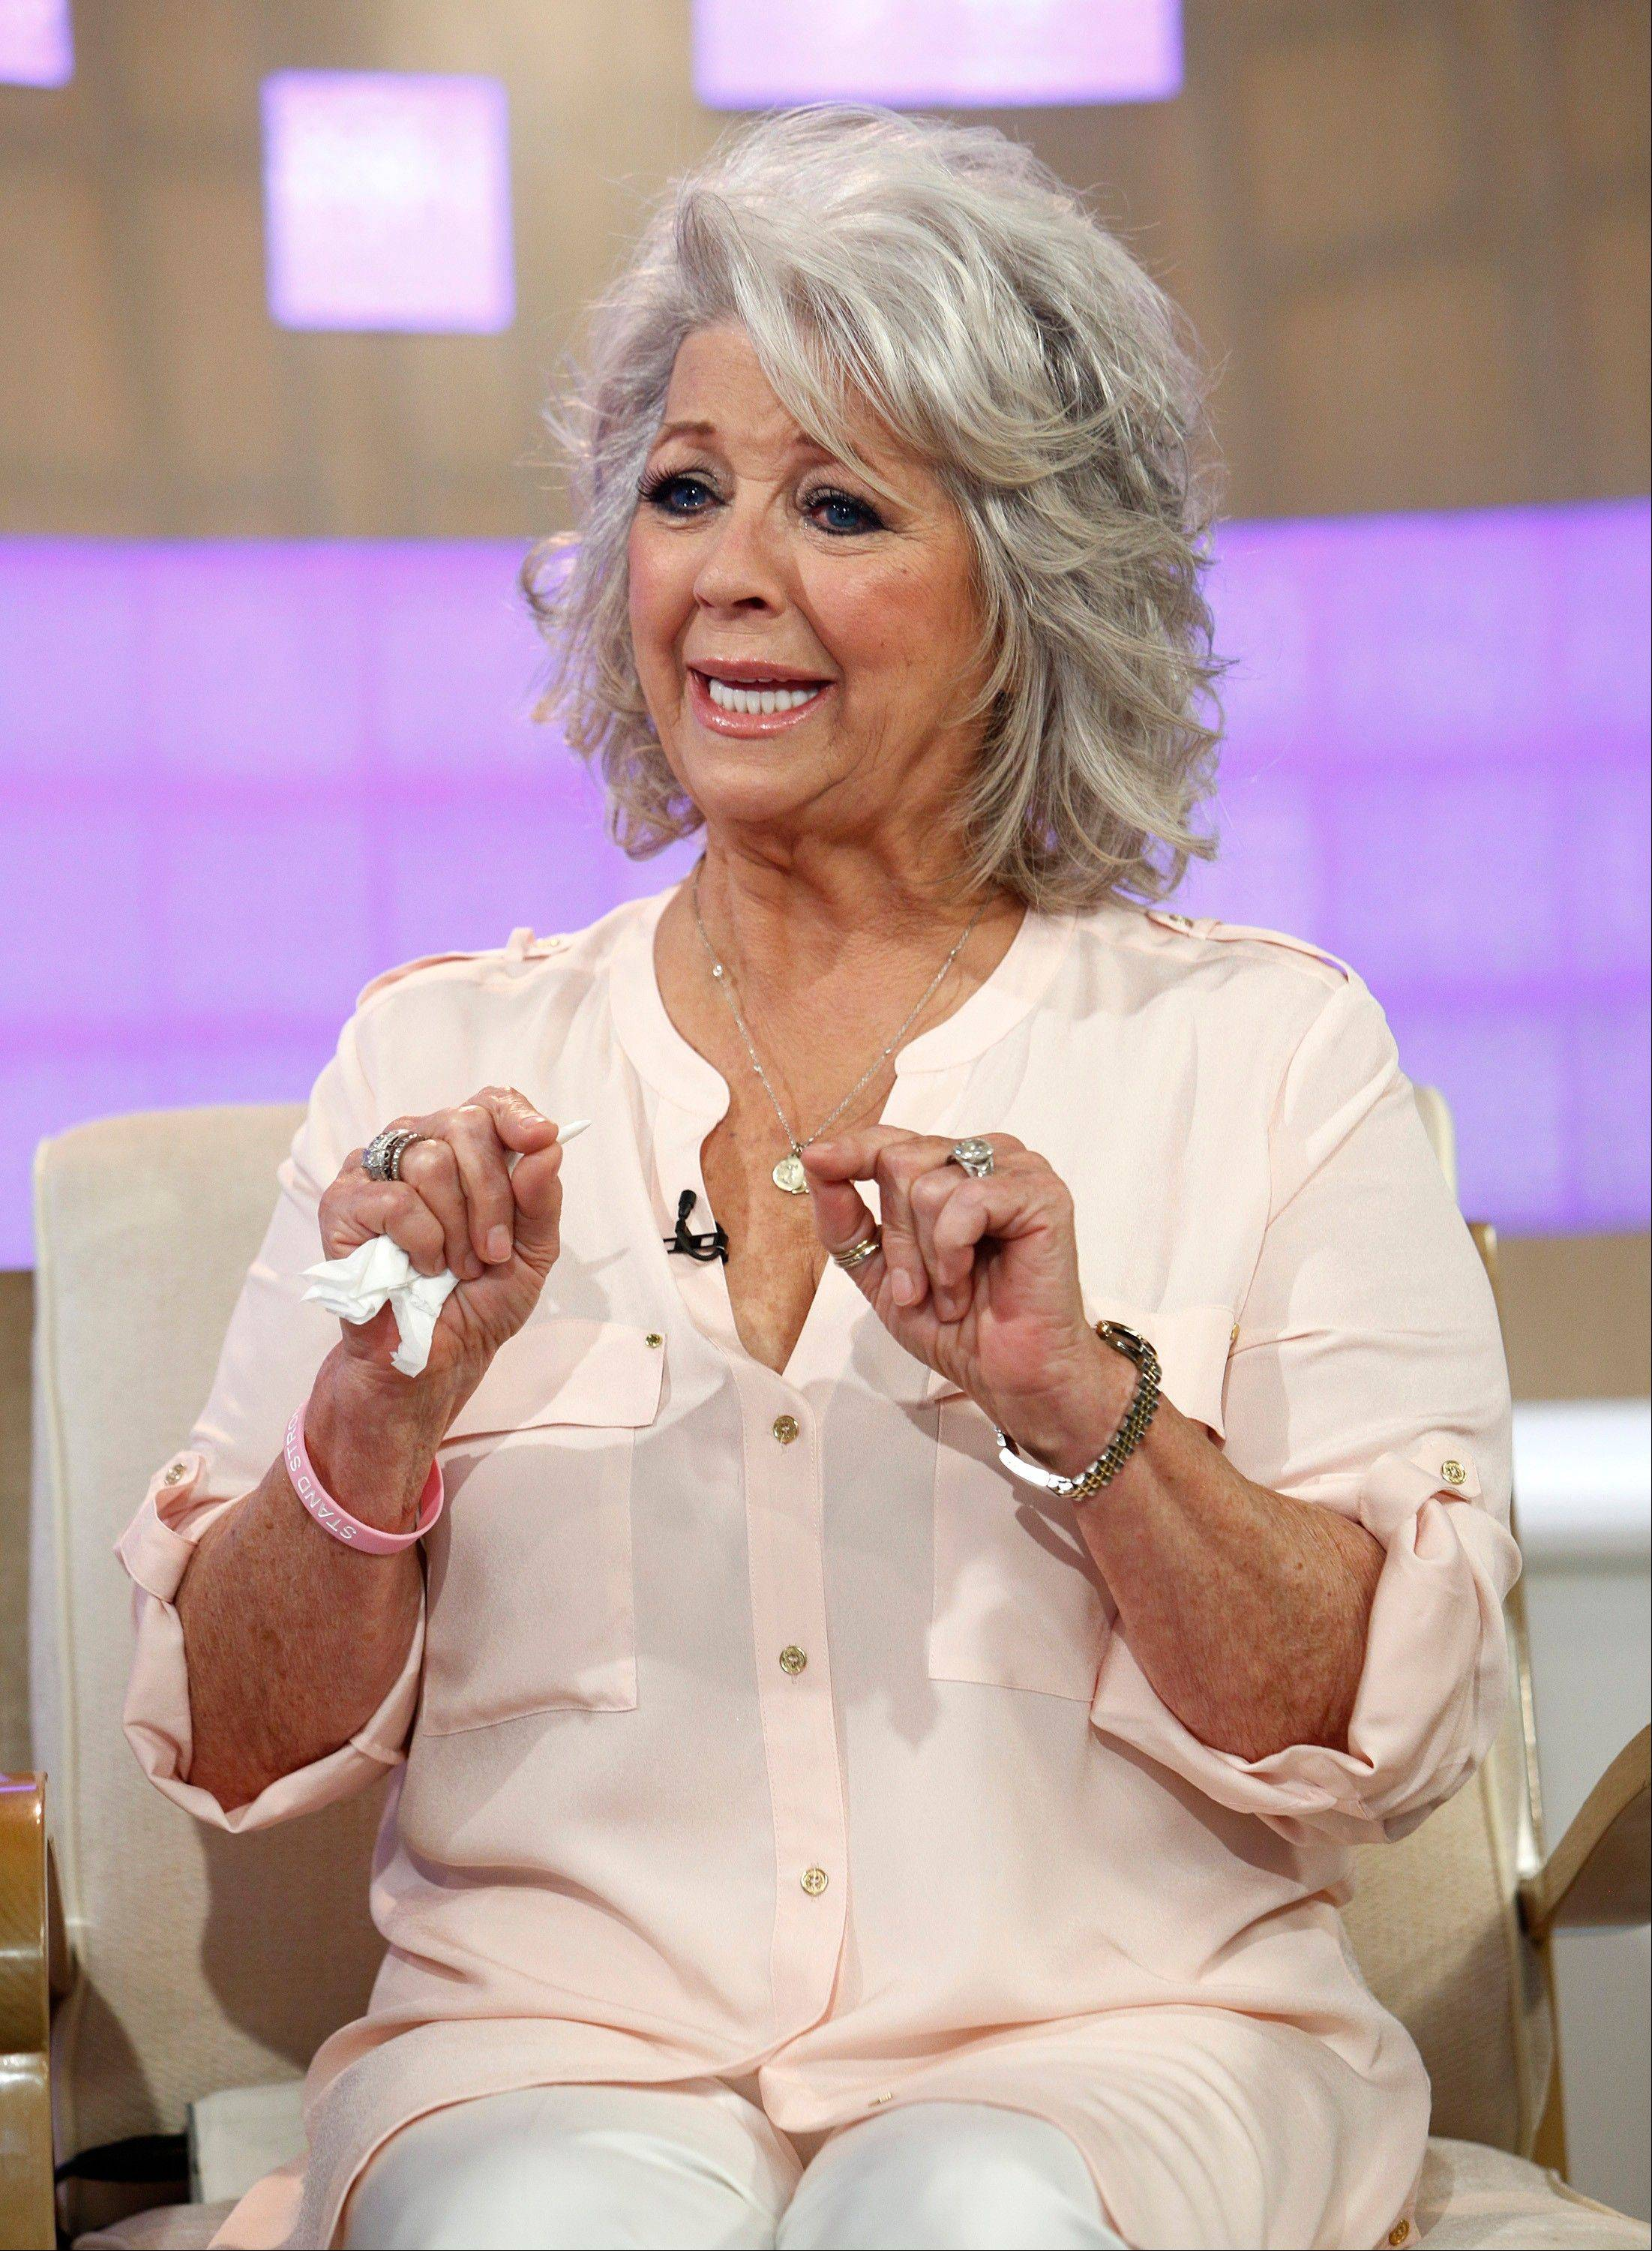 Celebrity chef Paula Deen on NBC News� �Today� show, Wednesday, June 26, 2013 in New York. Paula Deen has been dropped by the Food Network and Wal-Mart, but book-buyers are standing by her.